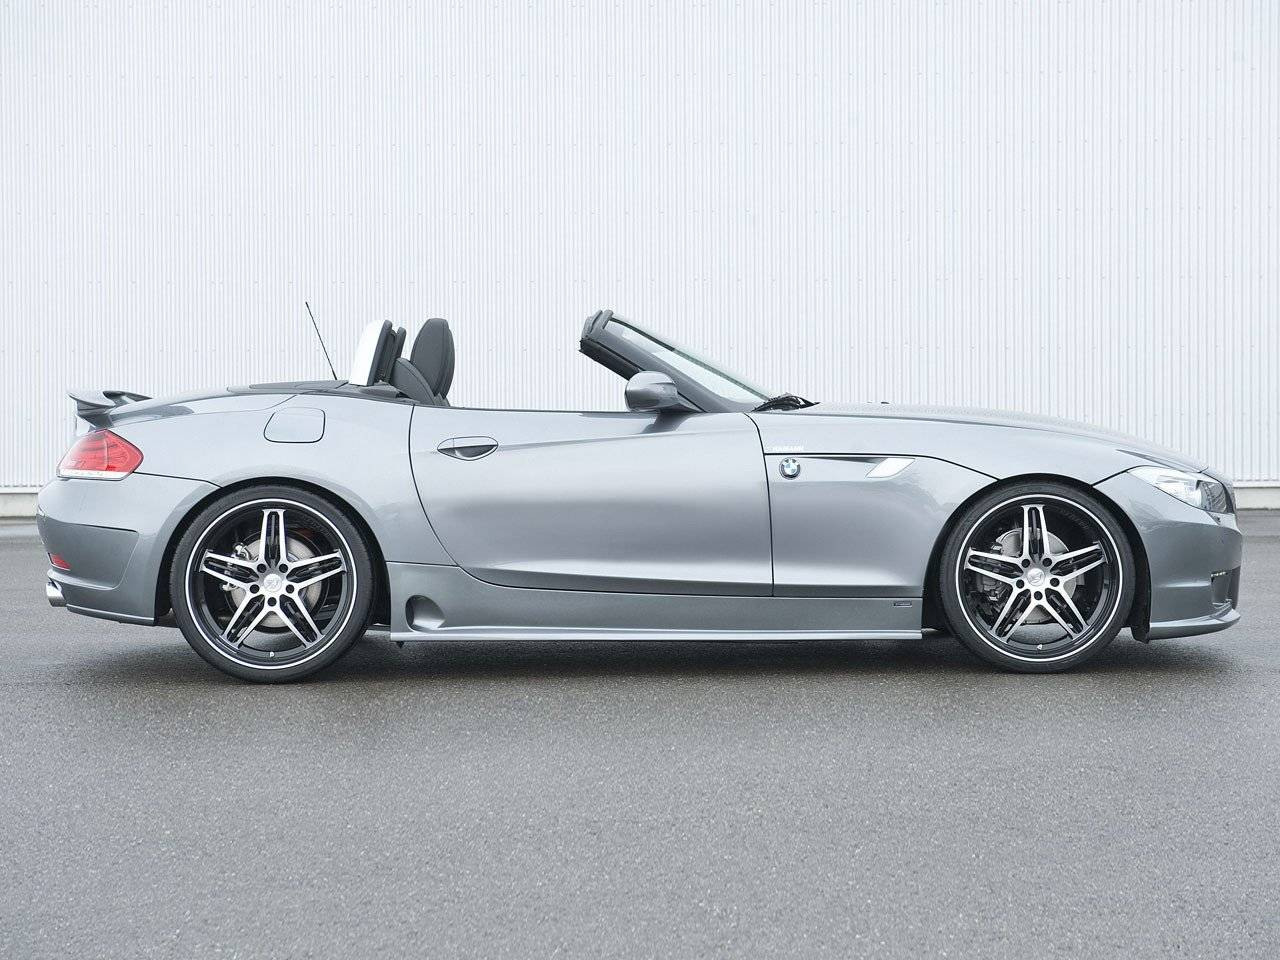 Overdaad Schaadt Hamann Z4 Roadster Tuning Amp Styling